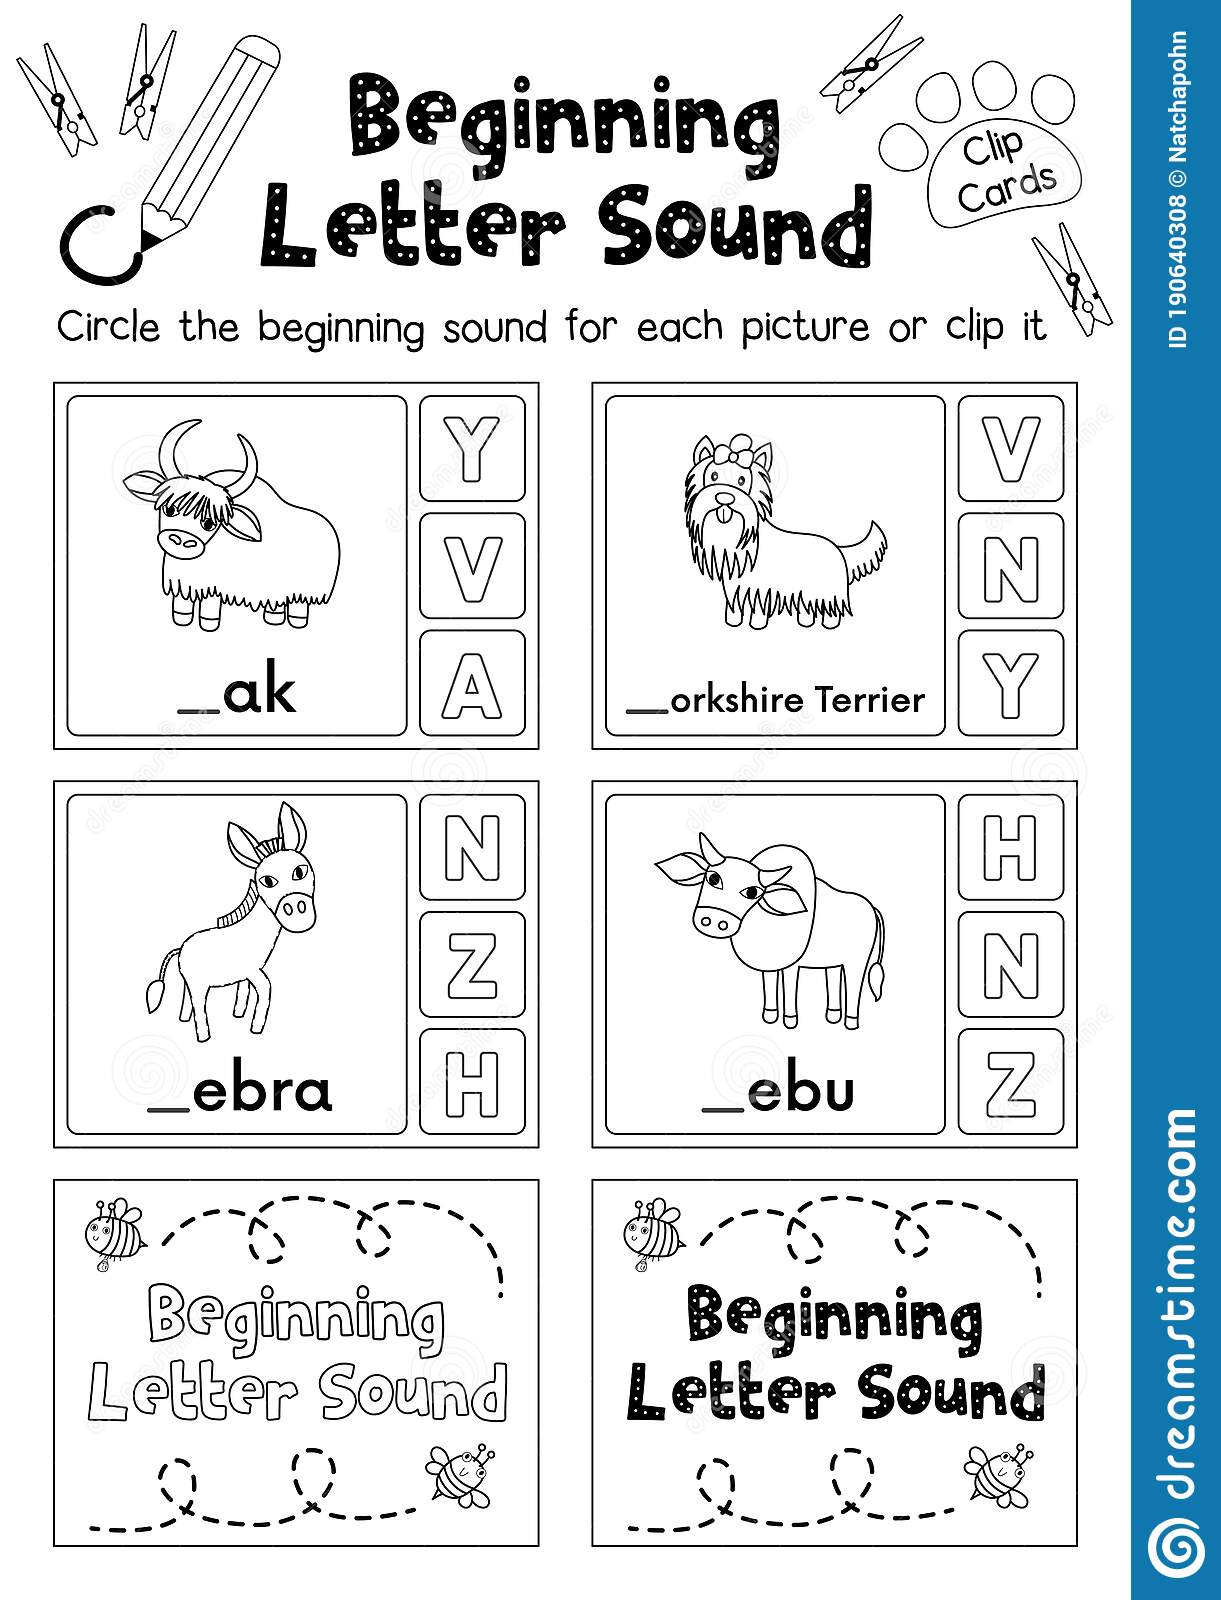 Worksheet Matching Vocabulary Yz Coloring Page Version